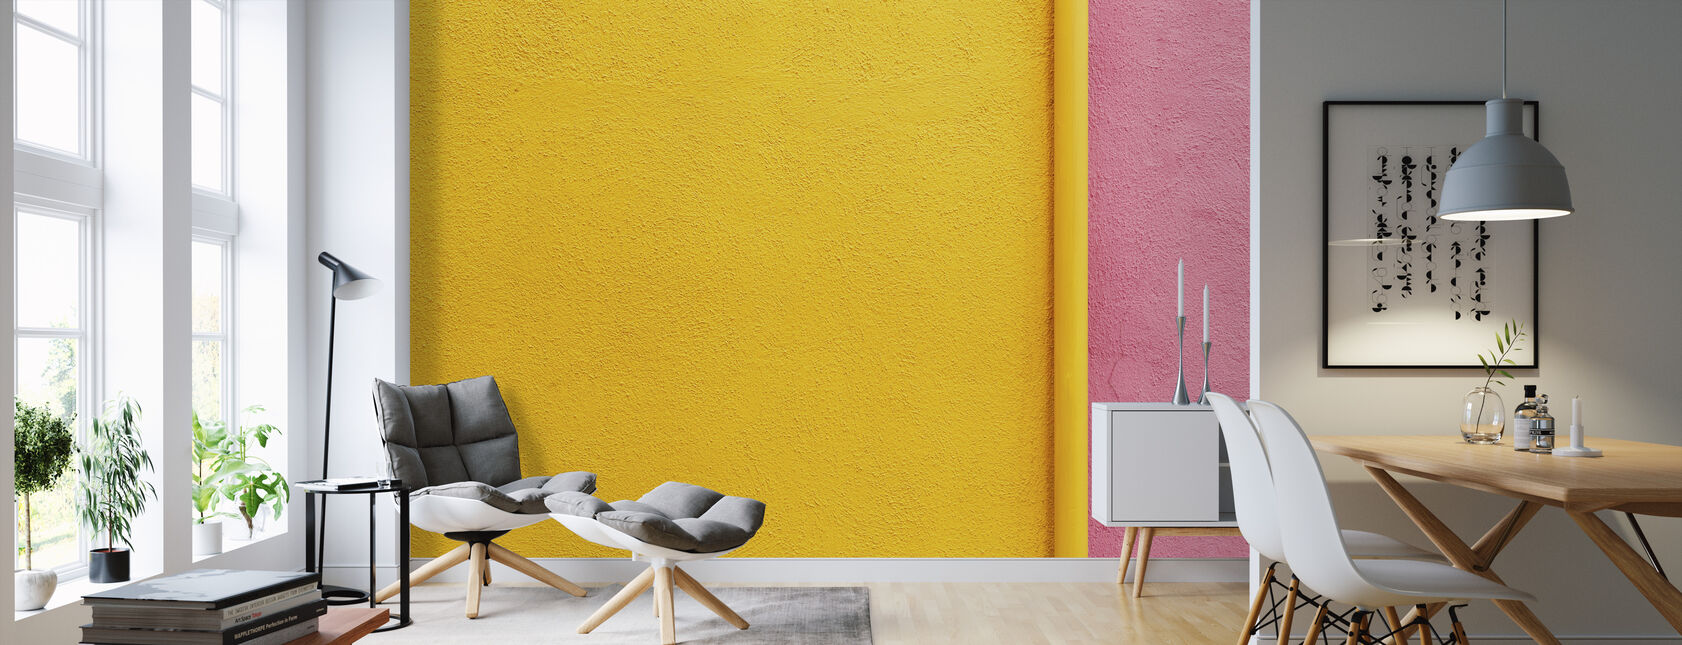 Yellow and Pink Wall with Pipe - Wallpaper - Living Room